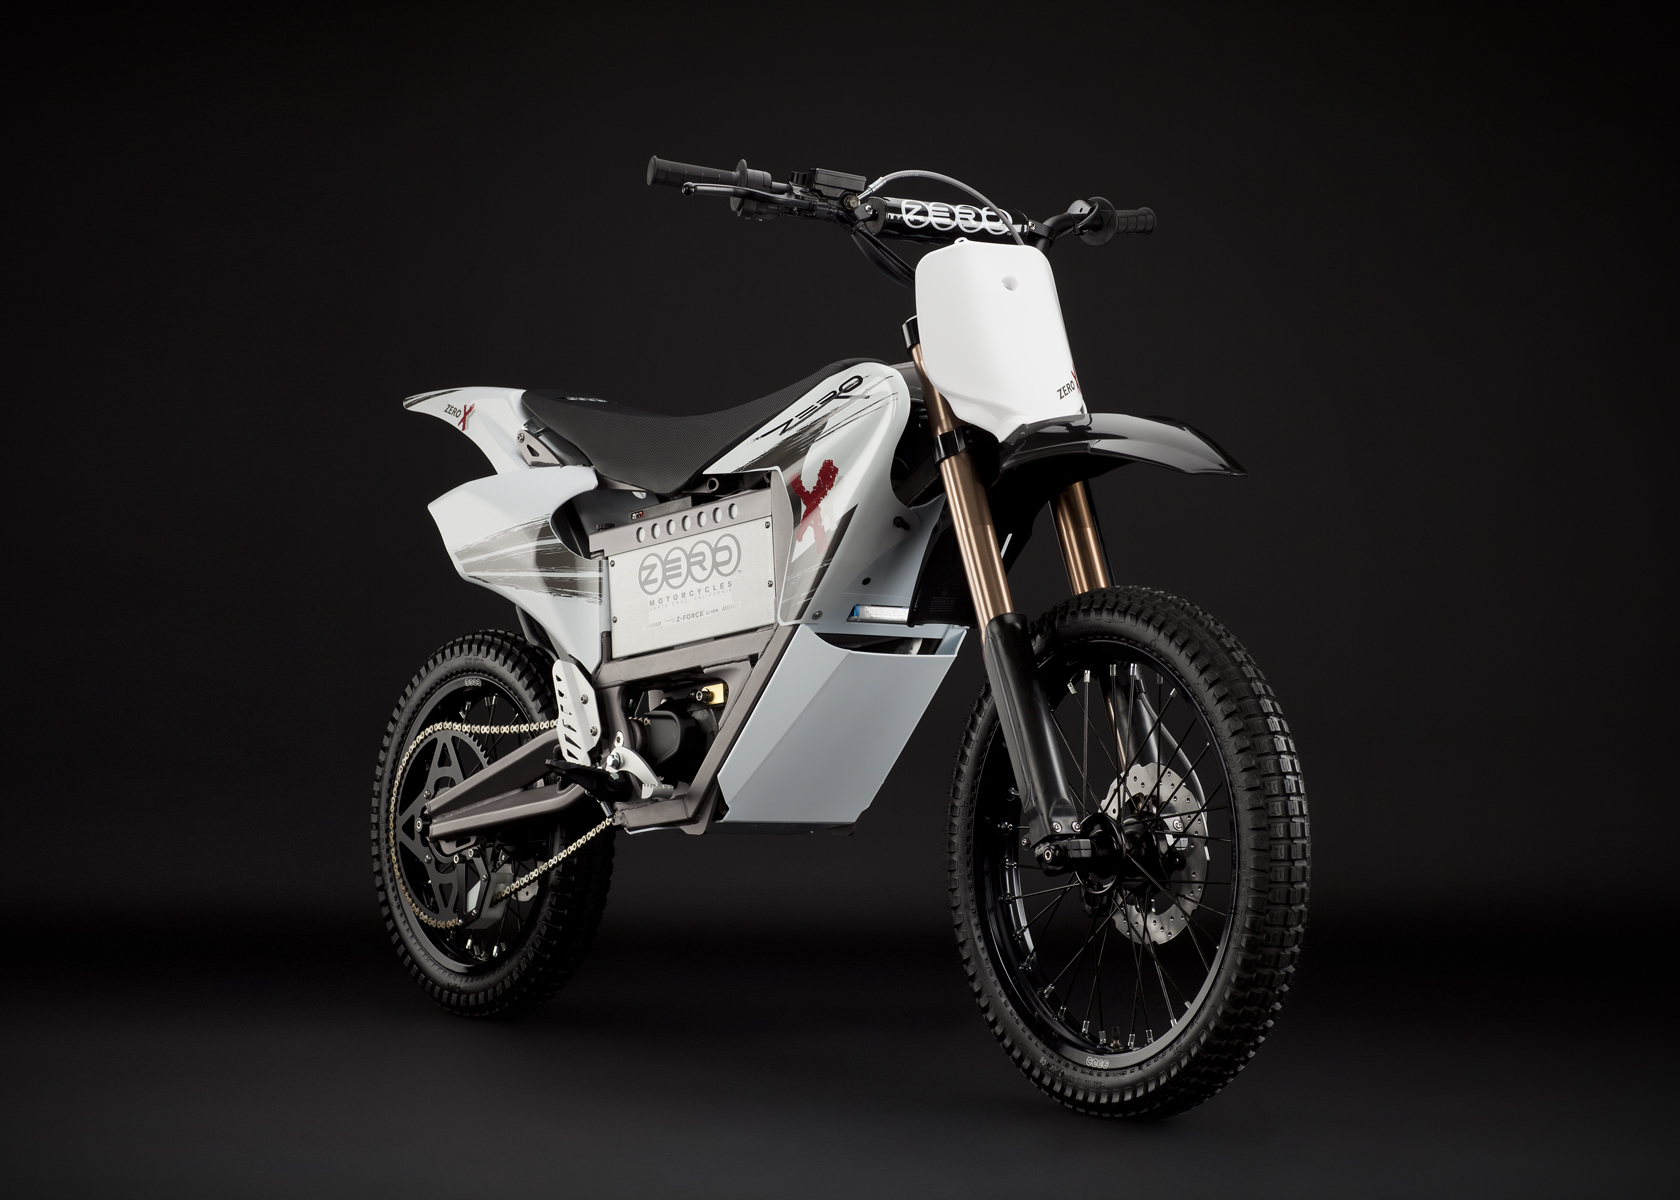 2011 Zero X Electric Motorcycle: Angle Right, Dirt Model